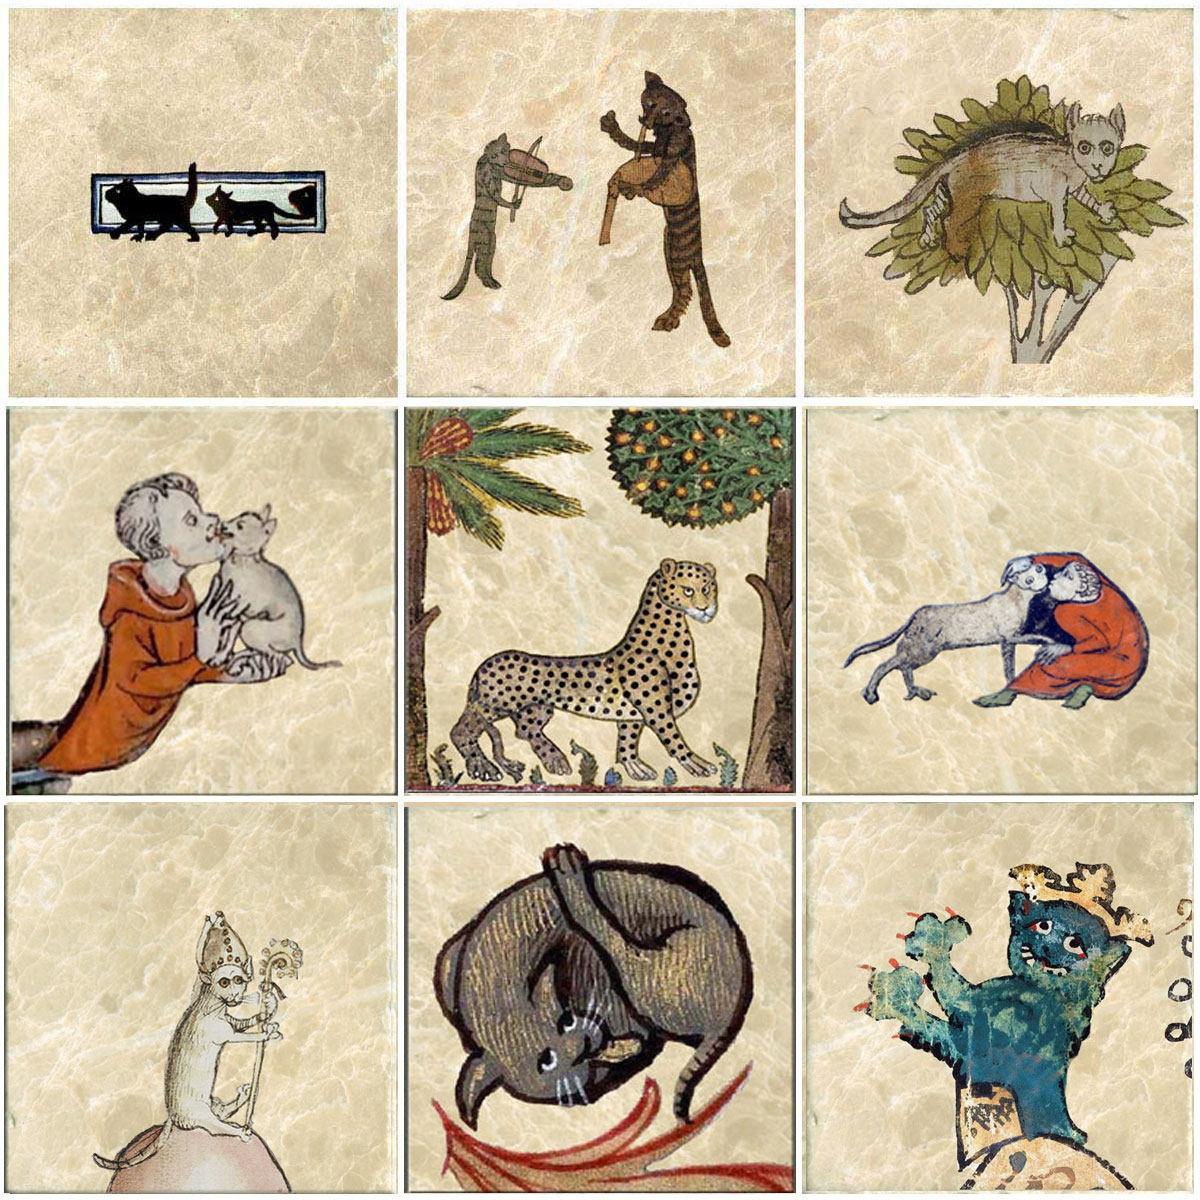 From top left: Black cats 13c.; Musical cats, 1320; Cat stuck in tree from Greek Fables, 1475; Unknown cat lover; Paerma Palazzo Dei Morani cat 12c.; Monk and cat from 14c Book of Hours, Flanders; Cat Bishop, 15c. German; Lyon Ms. 6881 cat; Crowned cat from Zurich armorial